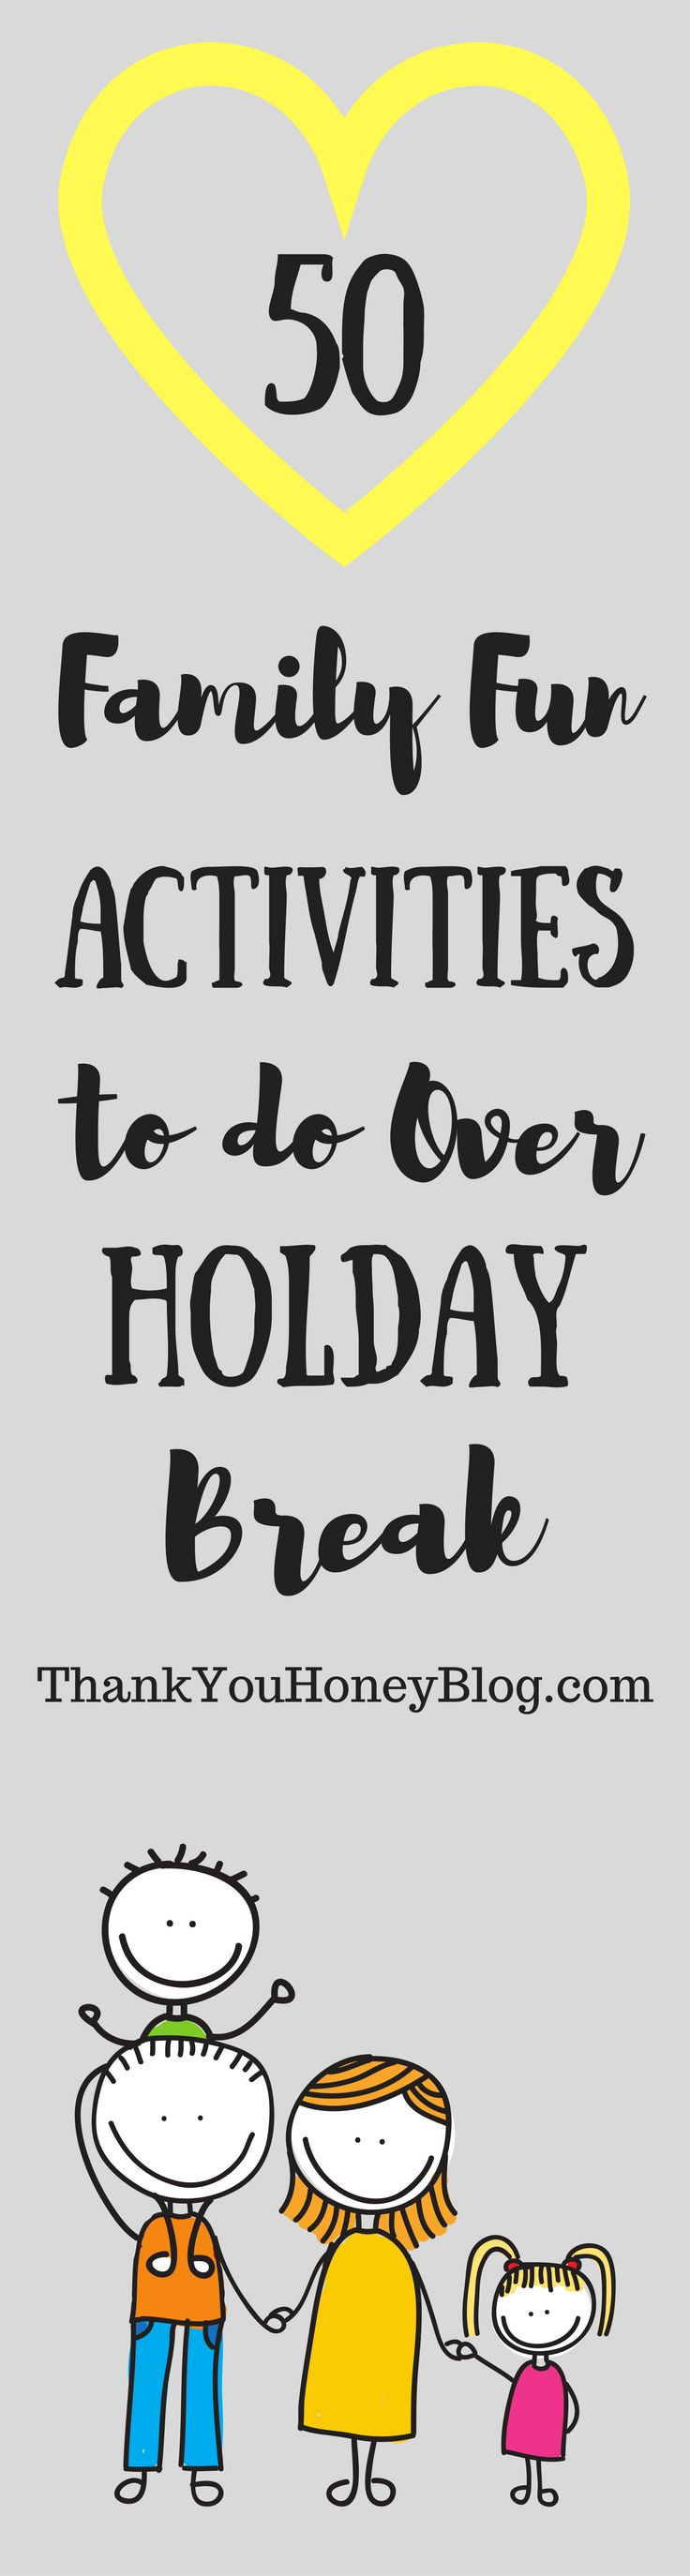 50 Family Fun Activities to do Over the Holiday Break. Read the whole article at ThankYouHoneyBlog.com, Click through & PIN IT! Follow Us on Pinterest + Subscribe to ThankYouHoneyBlog.com. Family, Activities, Kids, Holiday Break, School Vacation, Activities, Kids Activities, Home